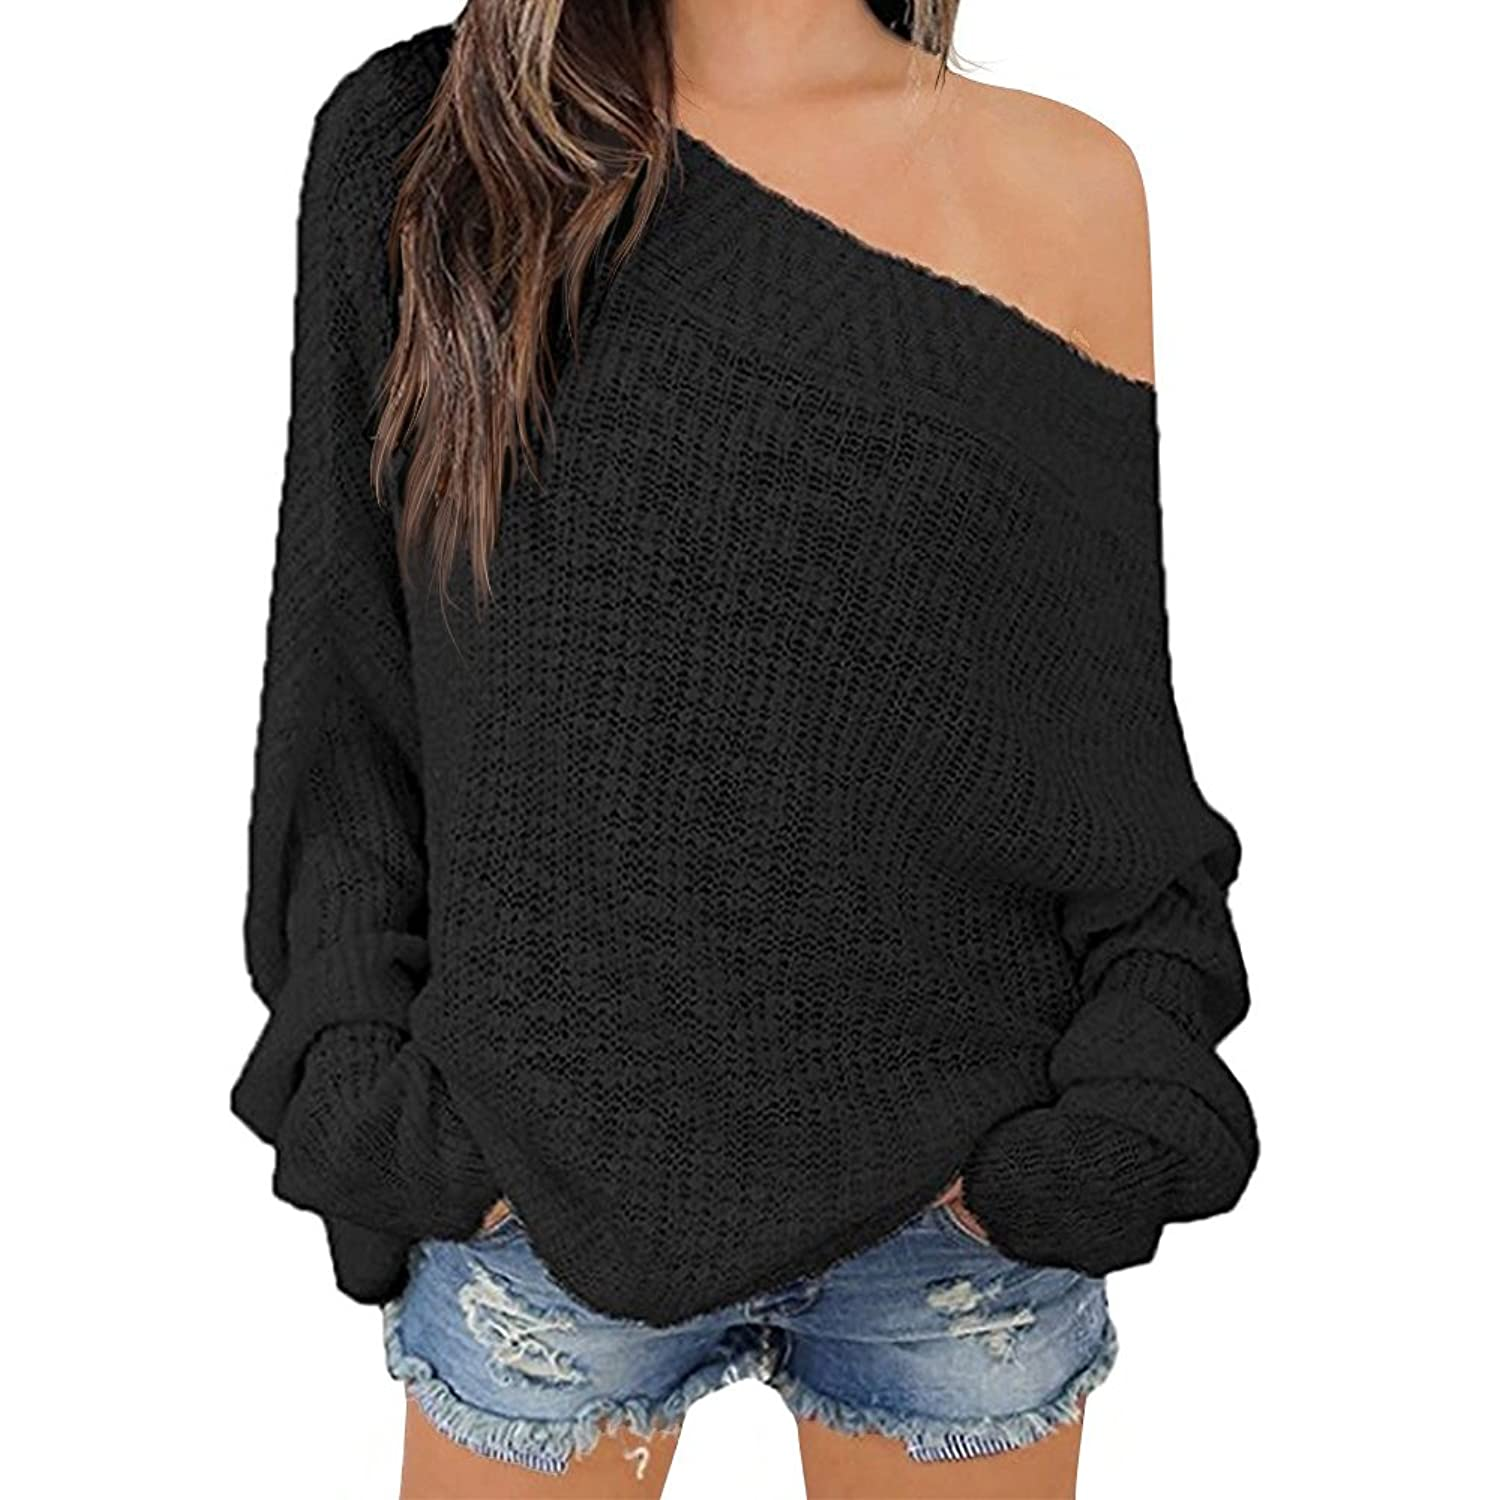 Amazon Best Sellers: Best Women's Sweaters